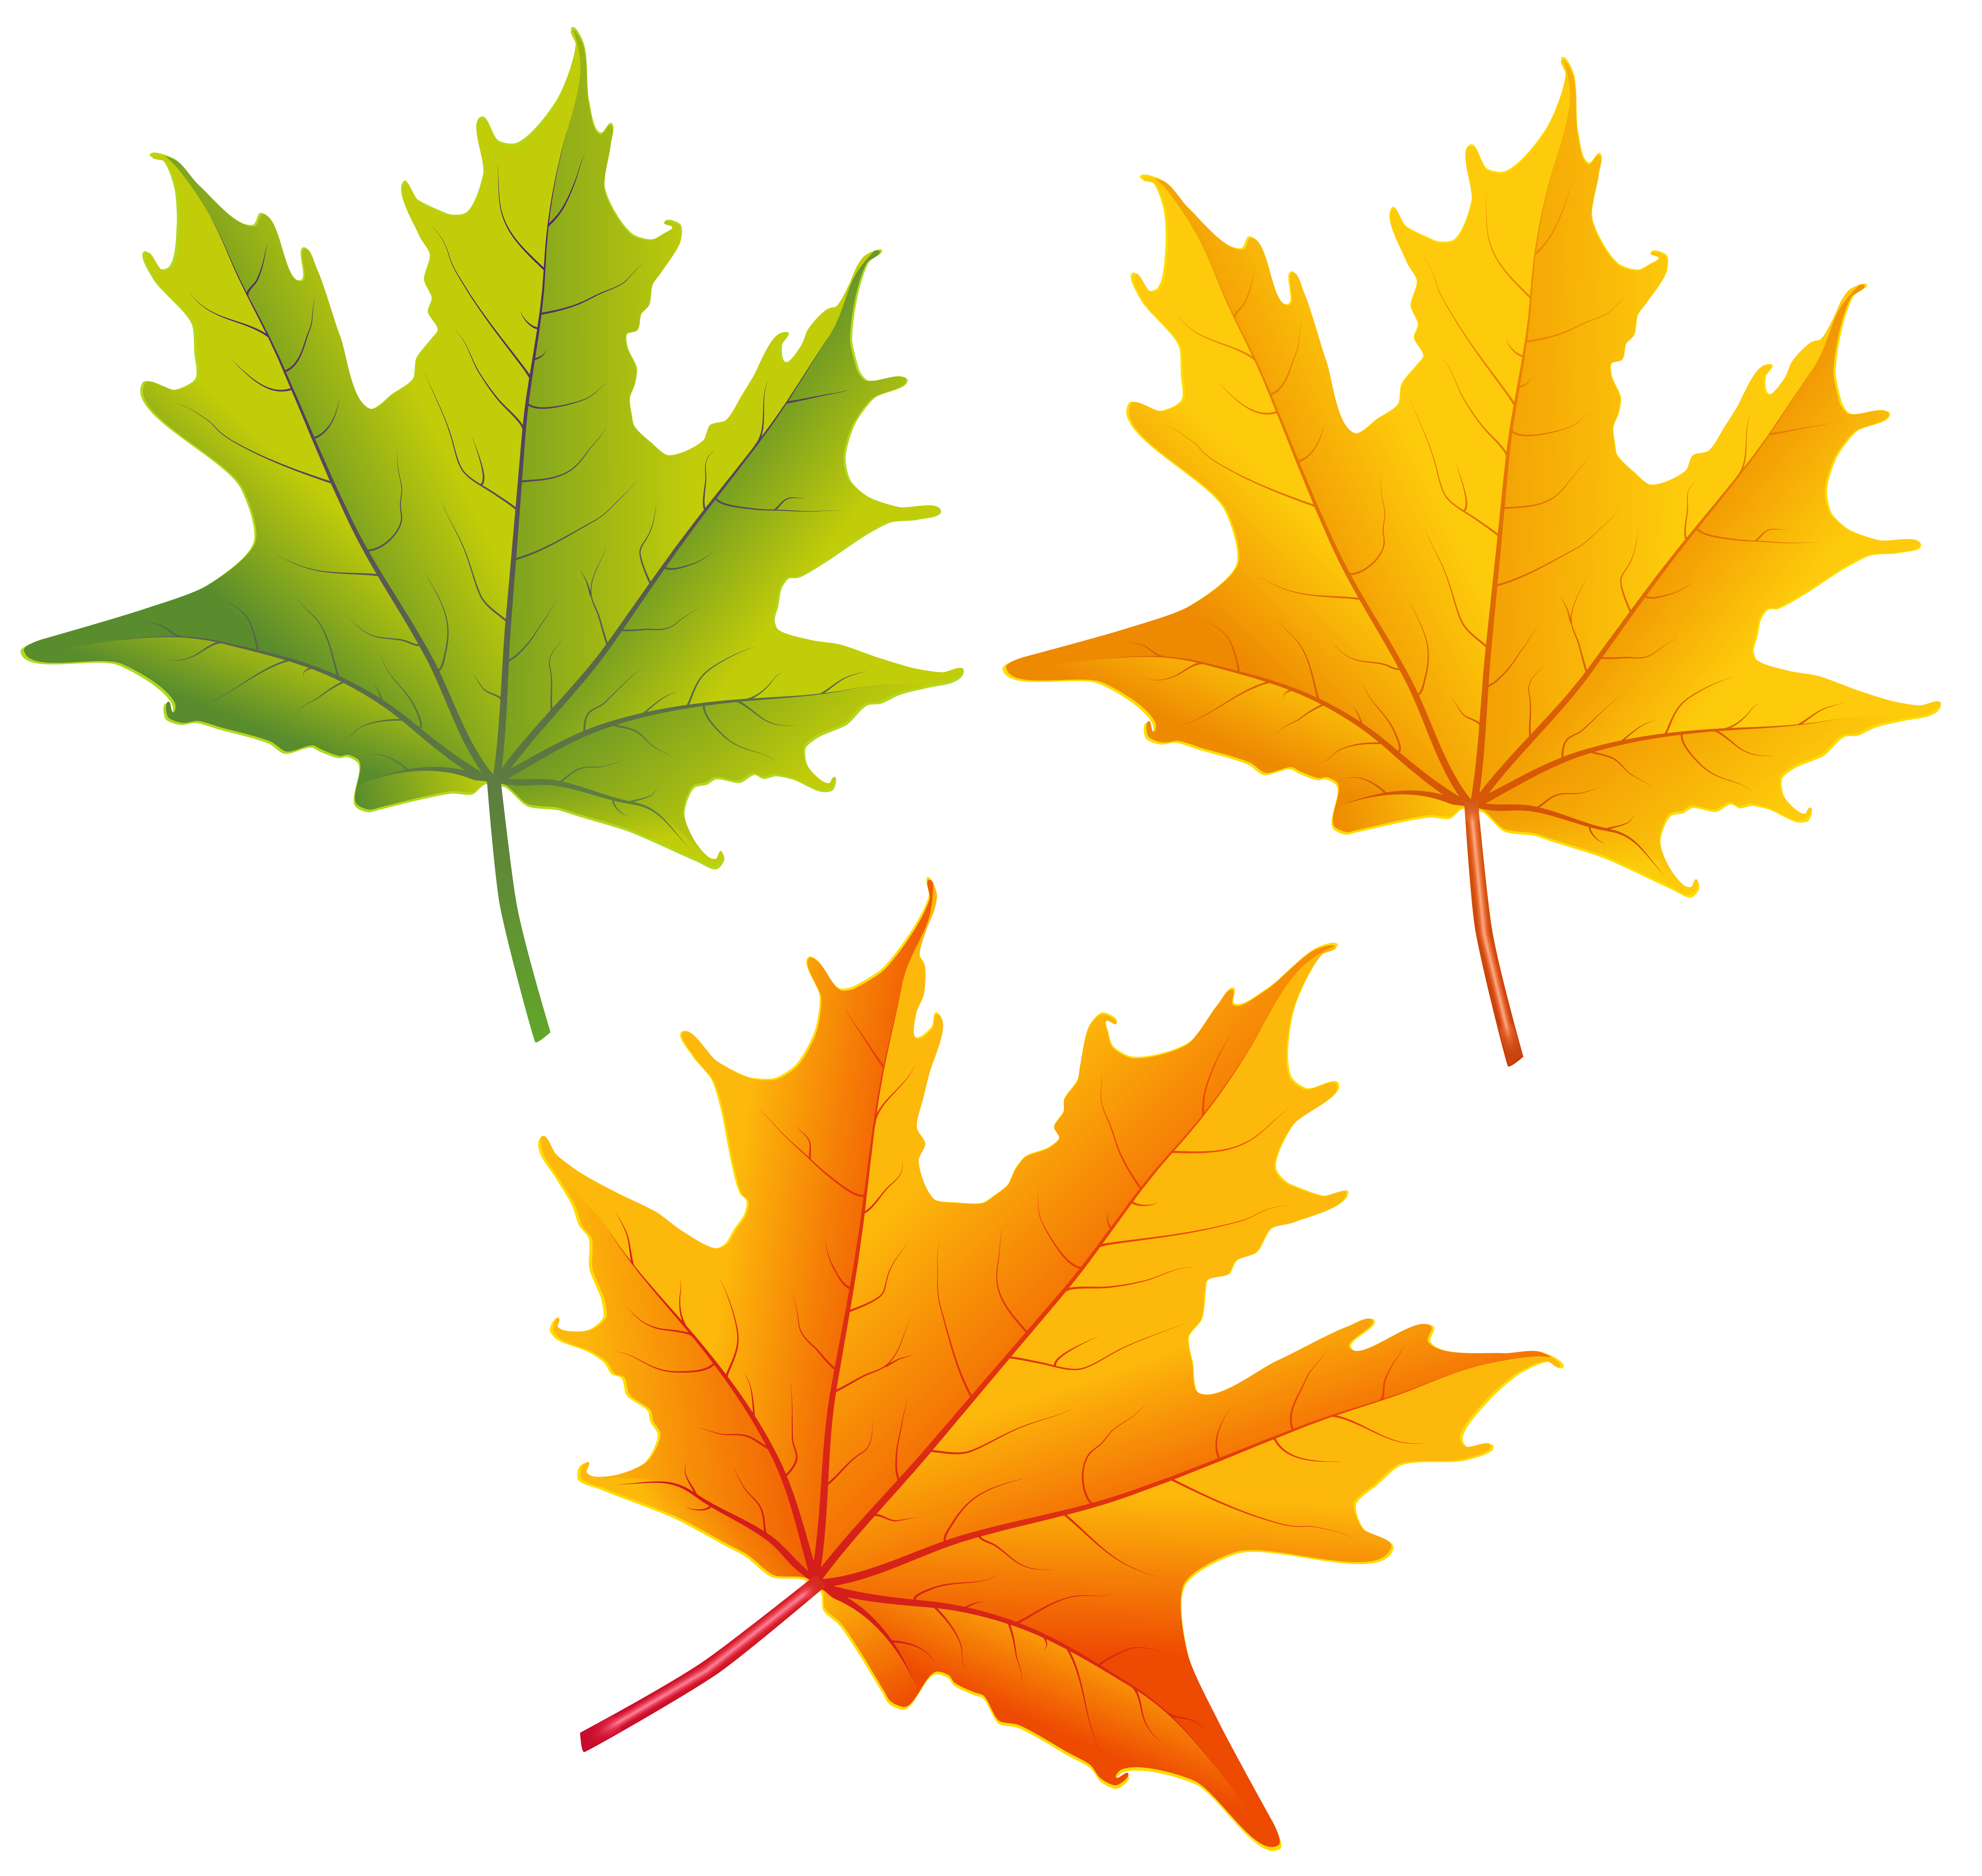 Colorful fall leaves clipart clipart library Pile Of Leaves Clipart | Free download best Pile Of Leaves Clipart ... clipart library